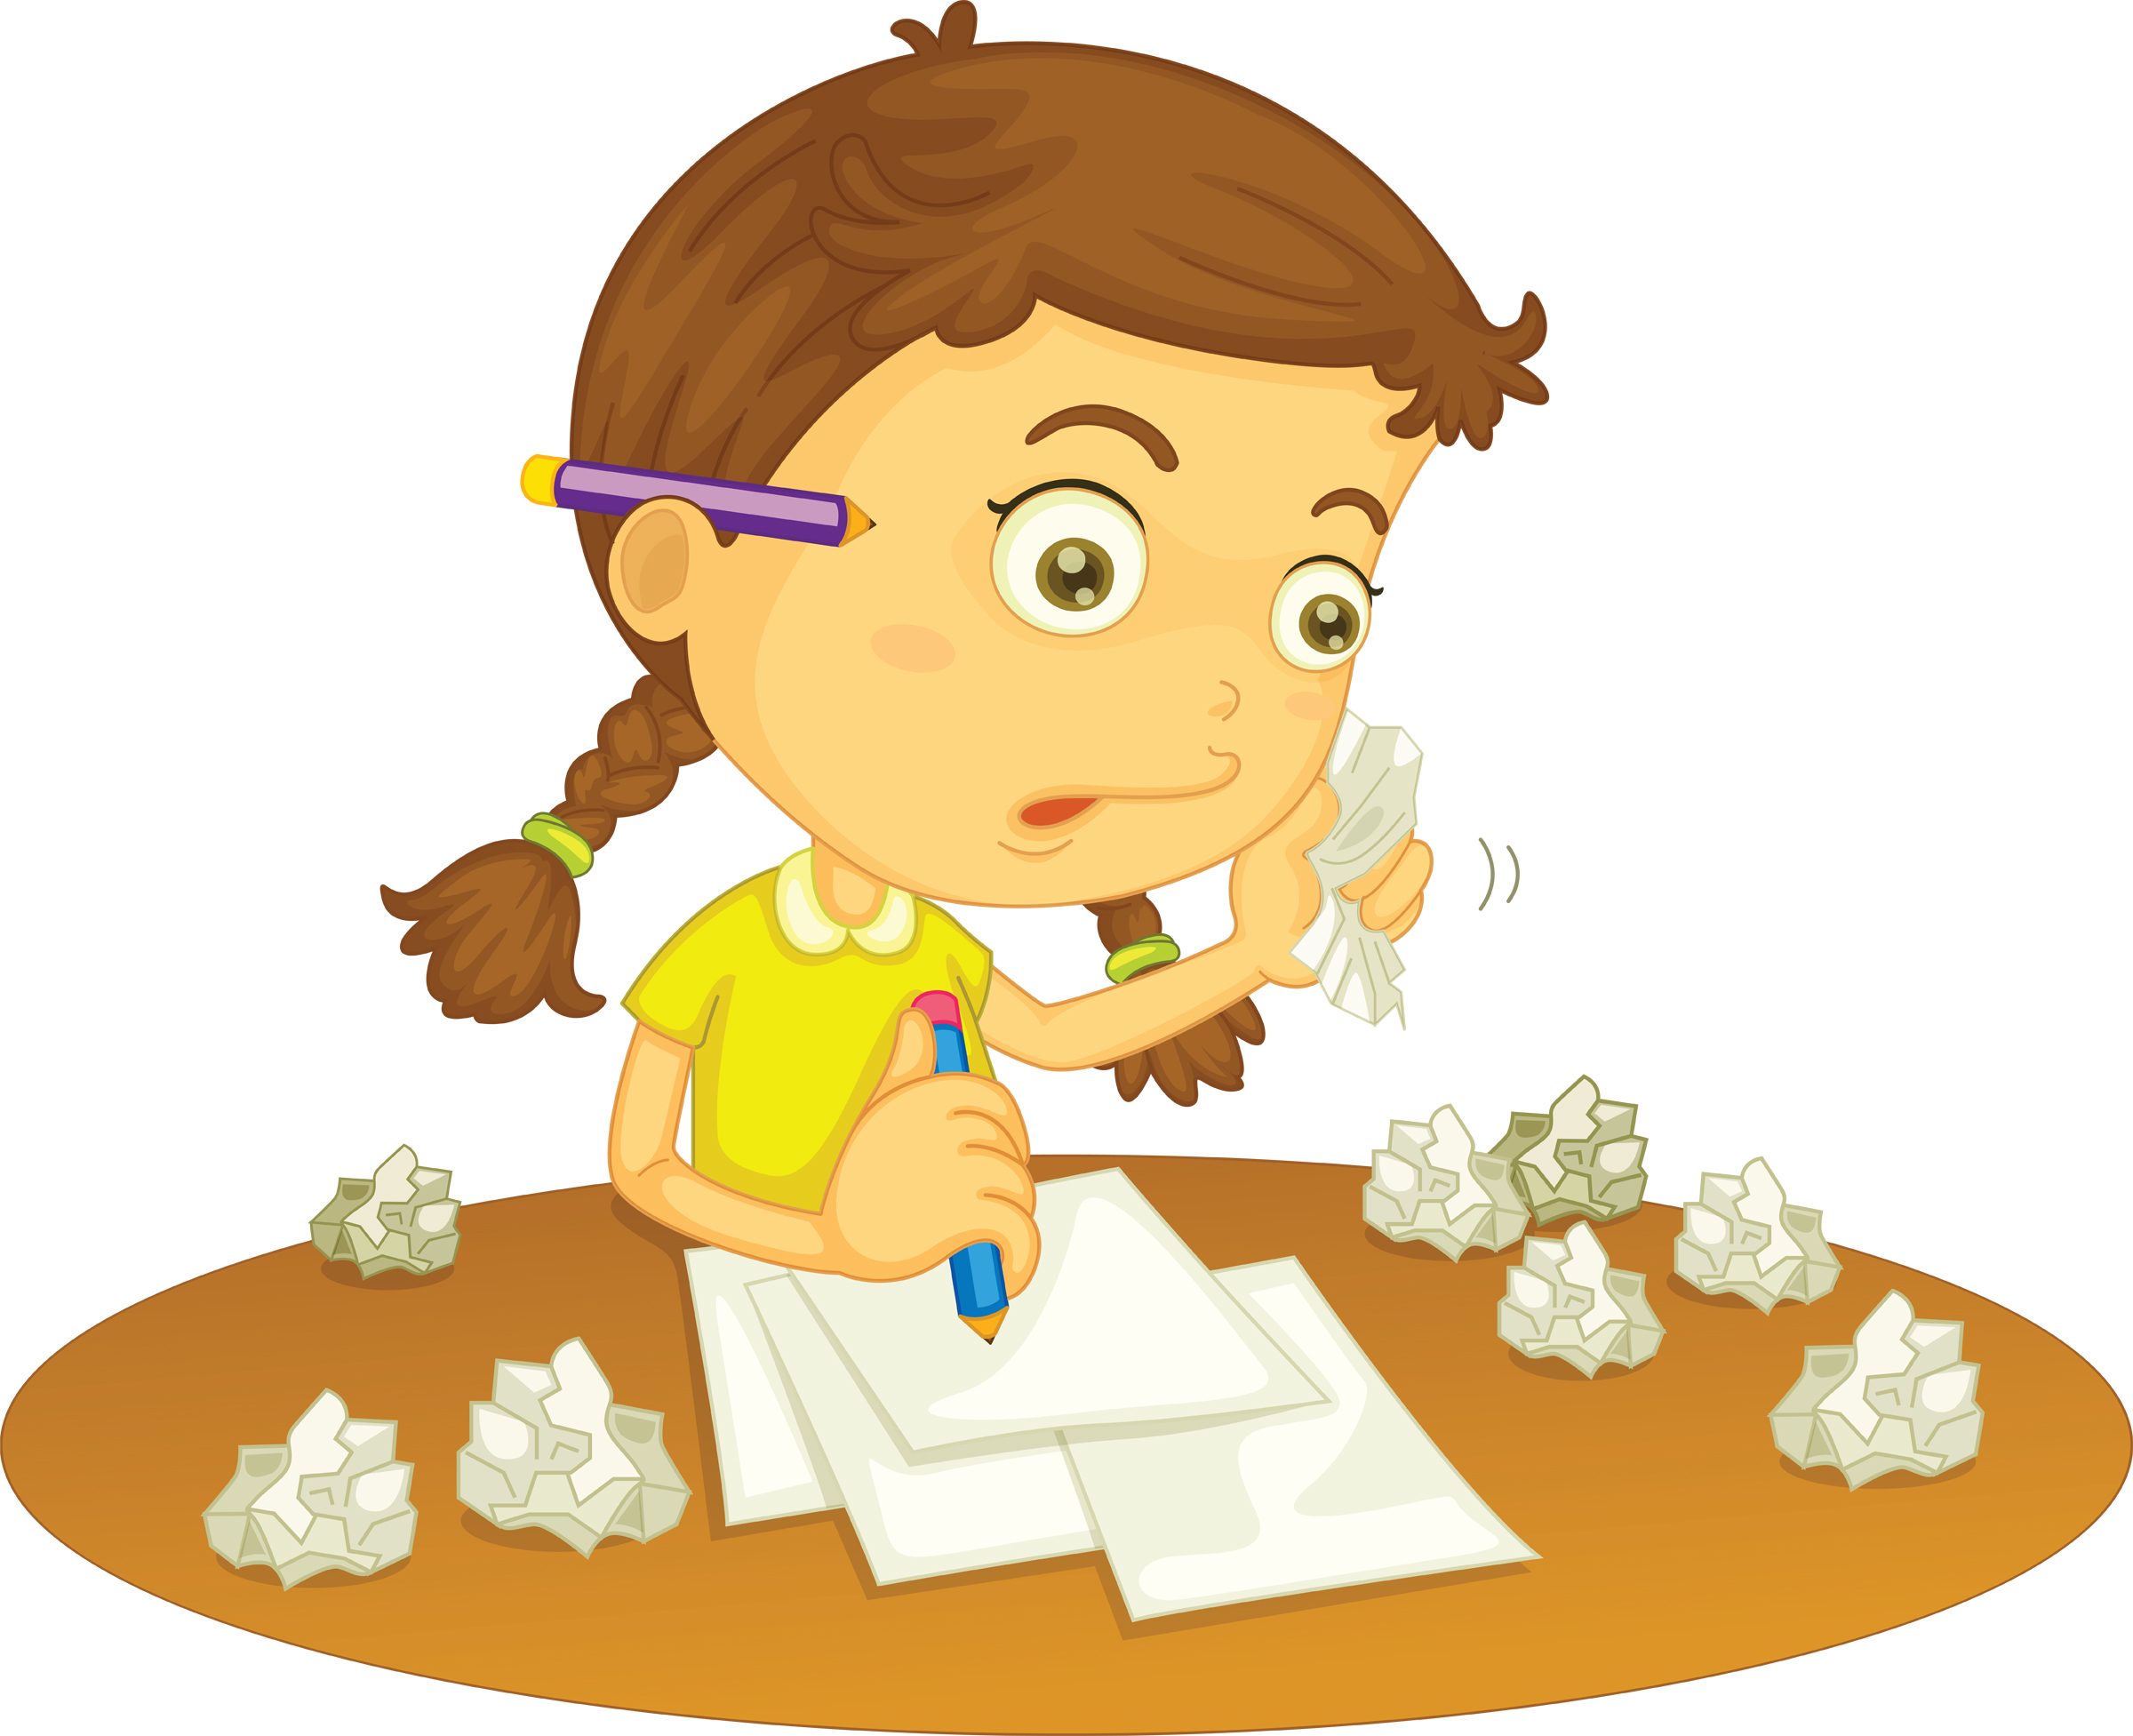 Doing homework homework clip art for kids free clipart images 8 wikiclipart 2